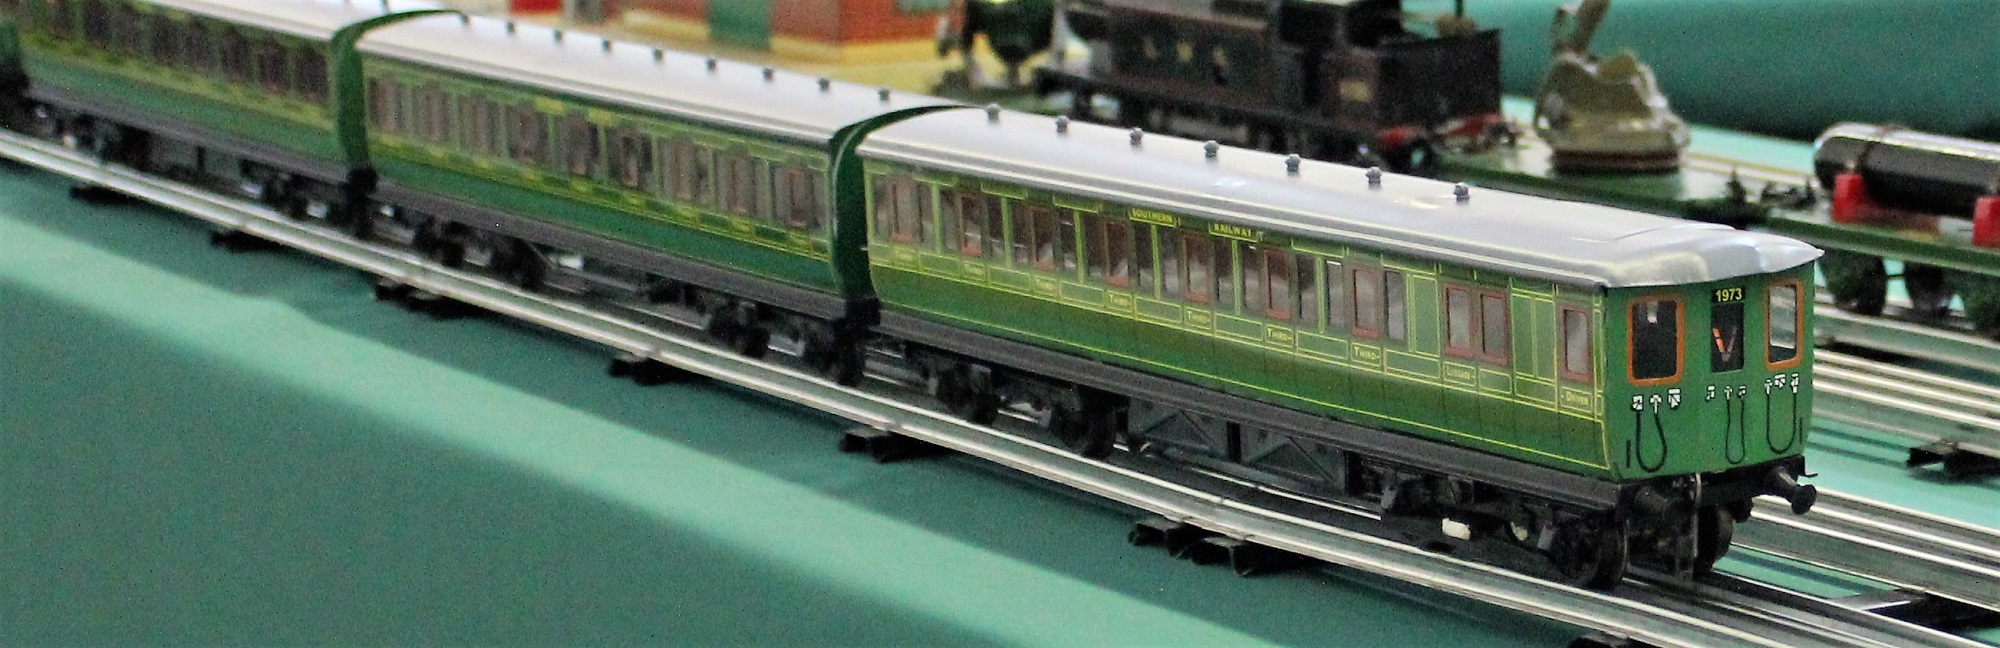 ACE Southern Railways EMU